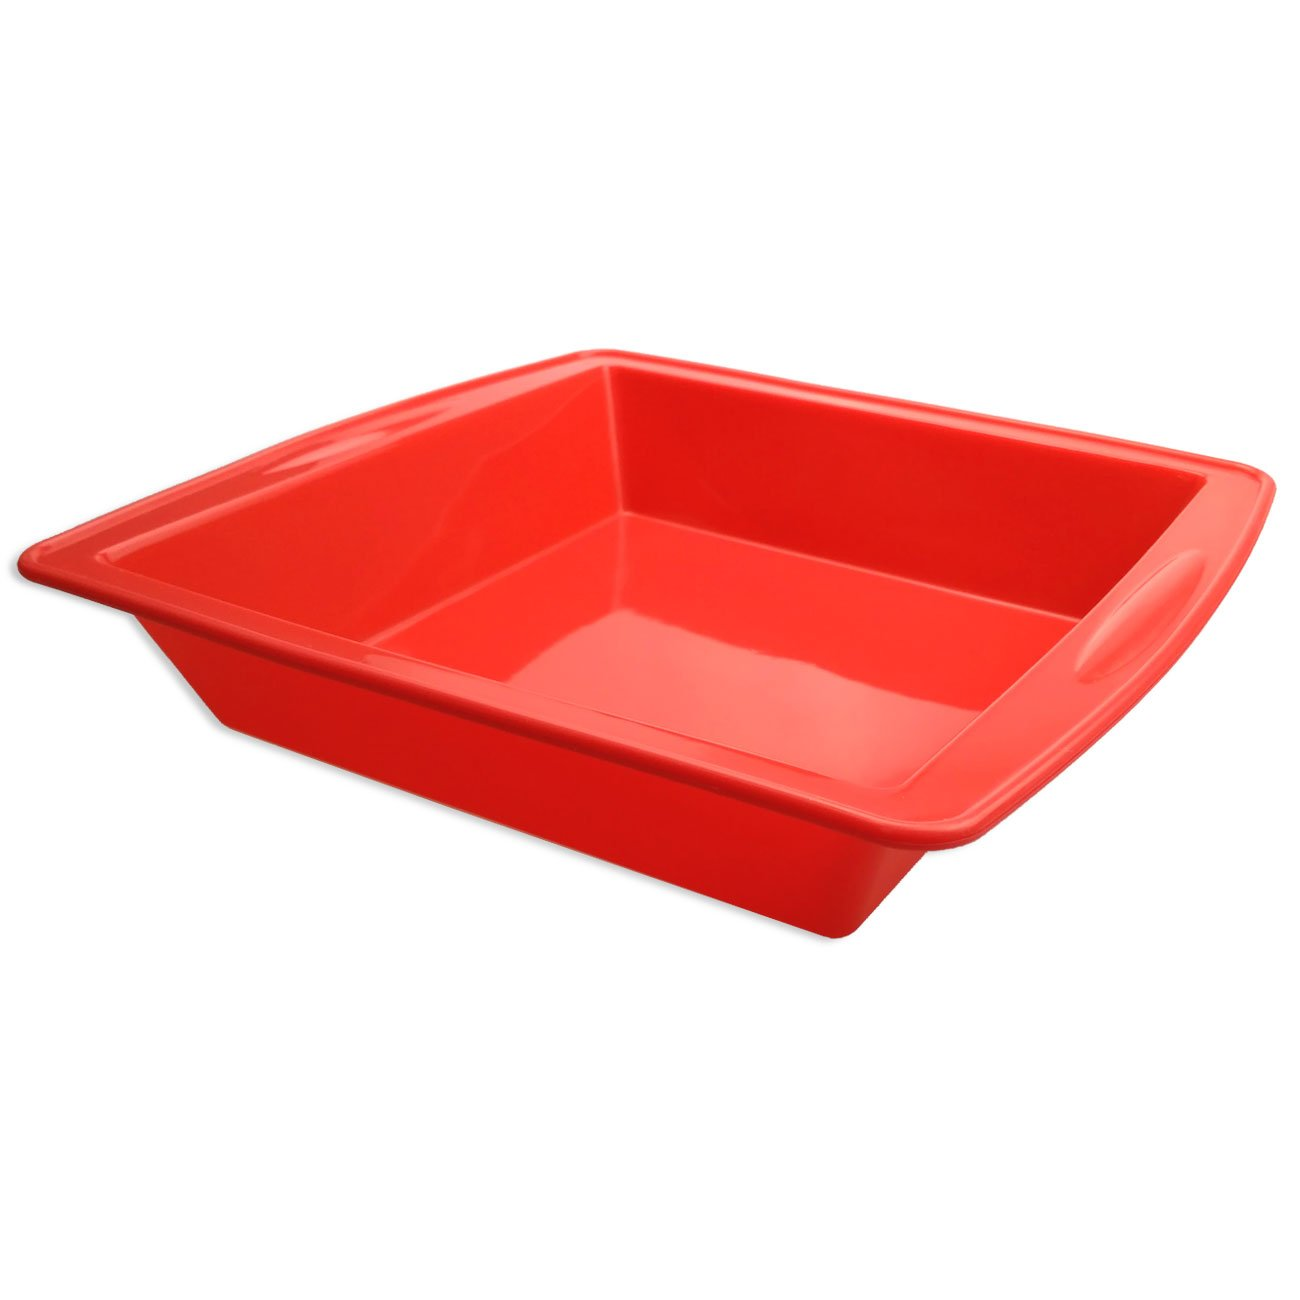 "Silicone Cake Pan, SILIVO 8.5""x 8.5""x2"" Nonstick Bakeware Baking Mould Brownie Pan for bread Chocolate Pie Pizza fudge and brownies"